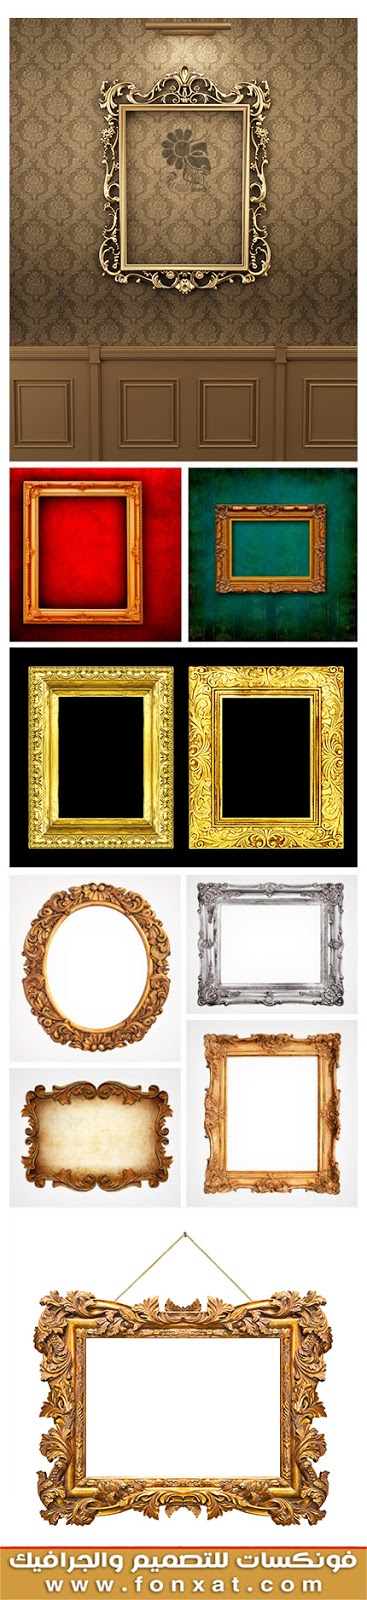 Download image quality decorative frames old